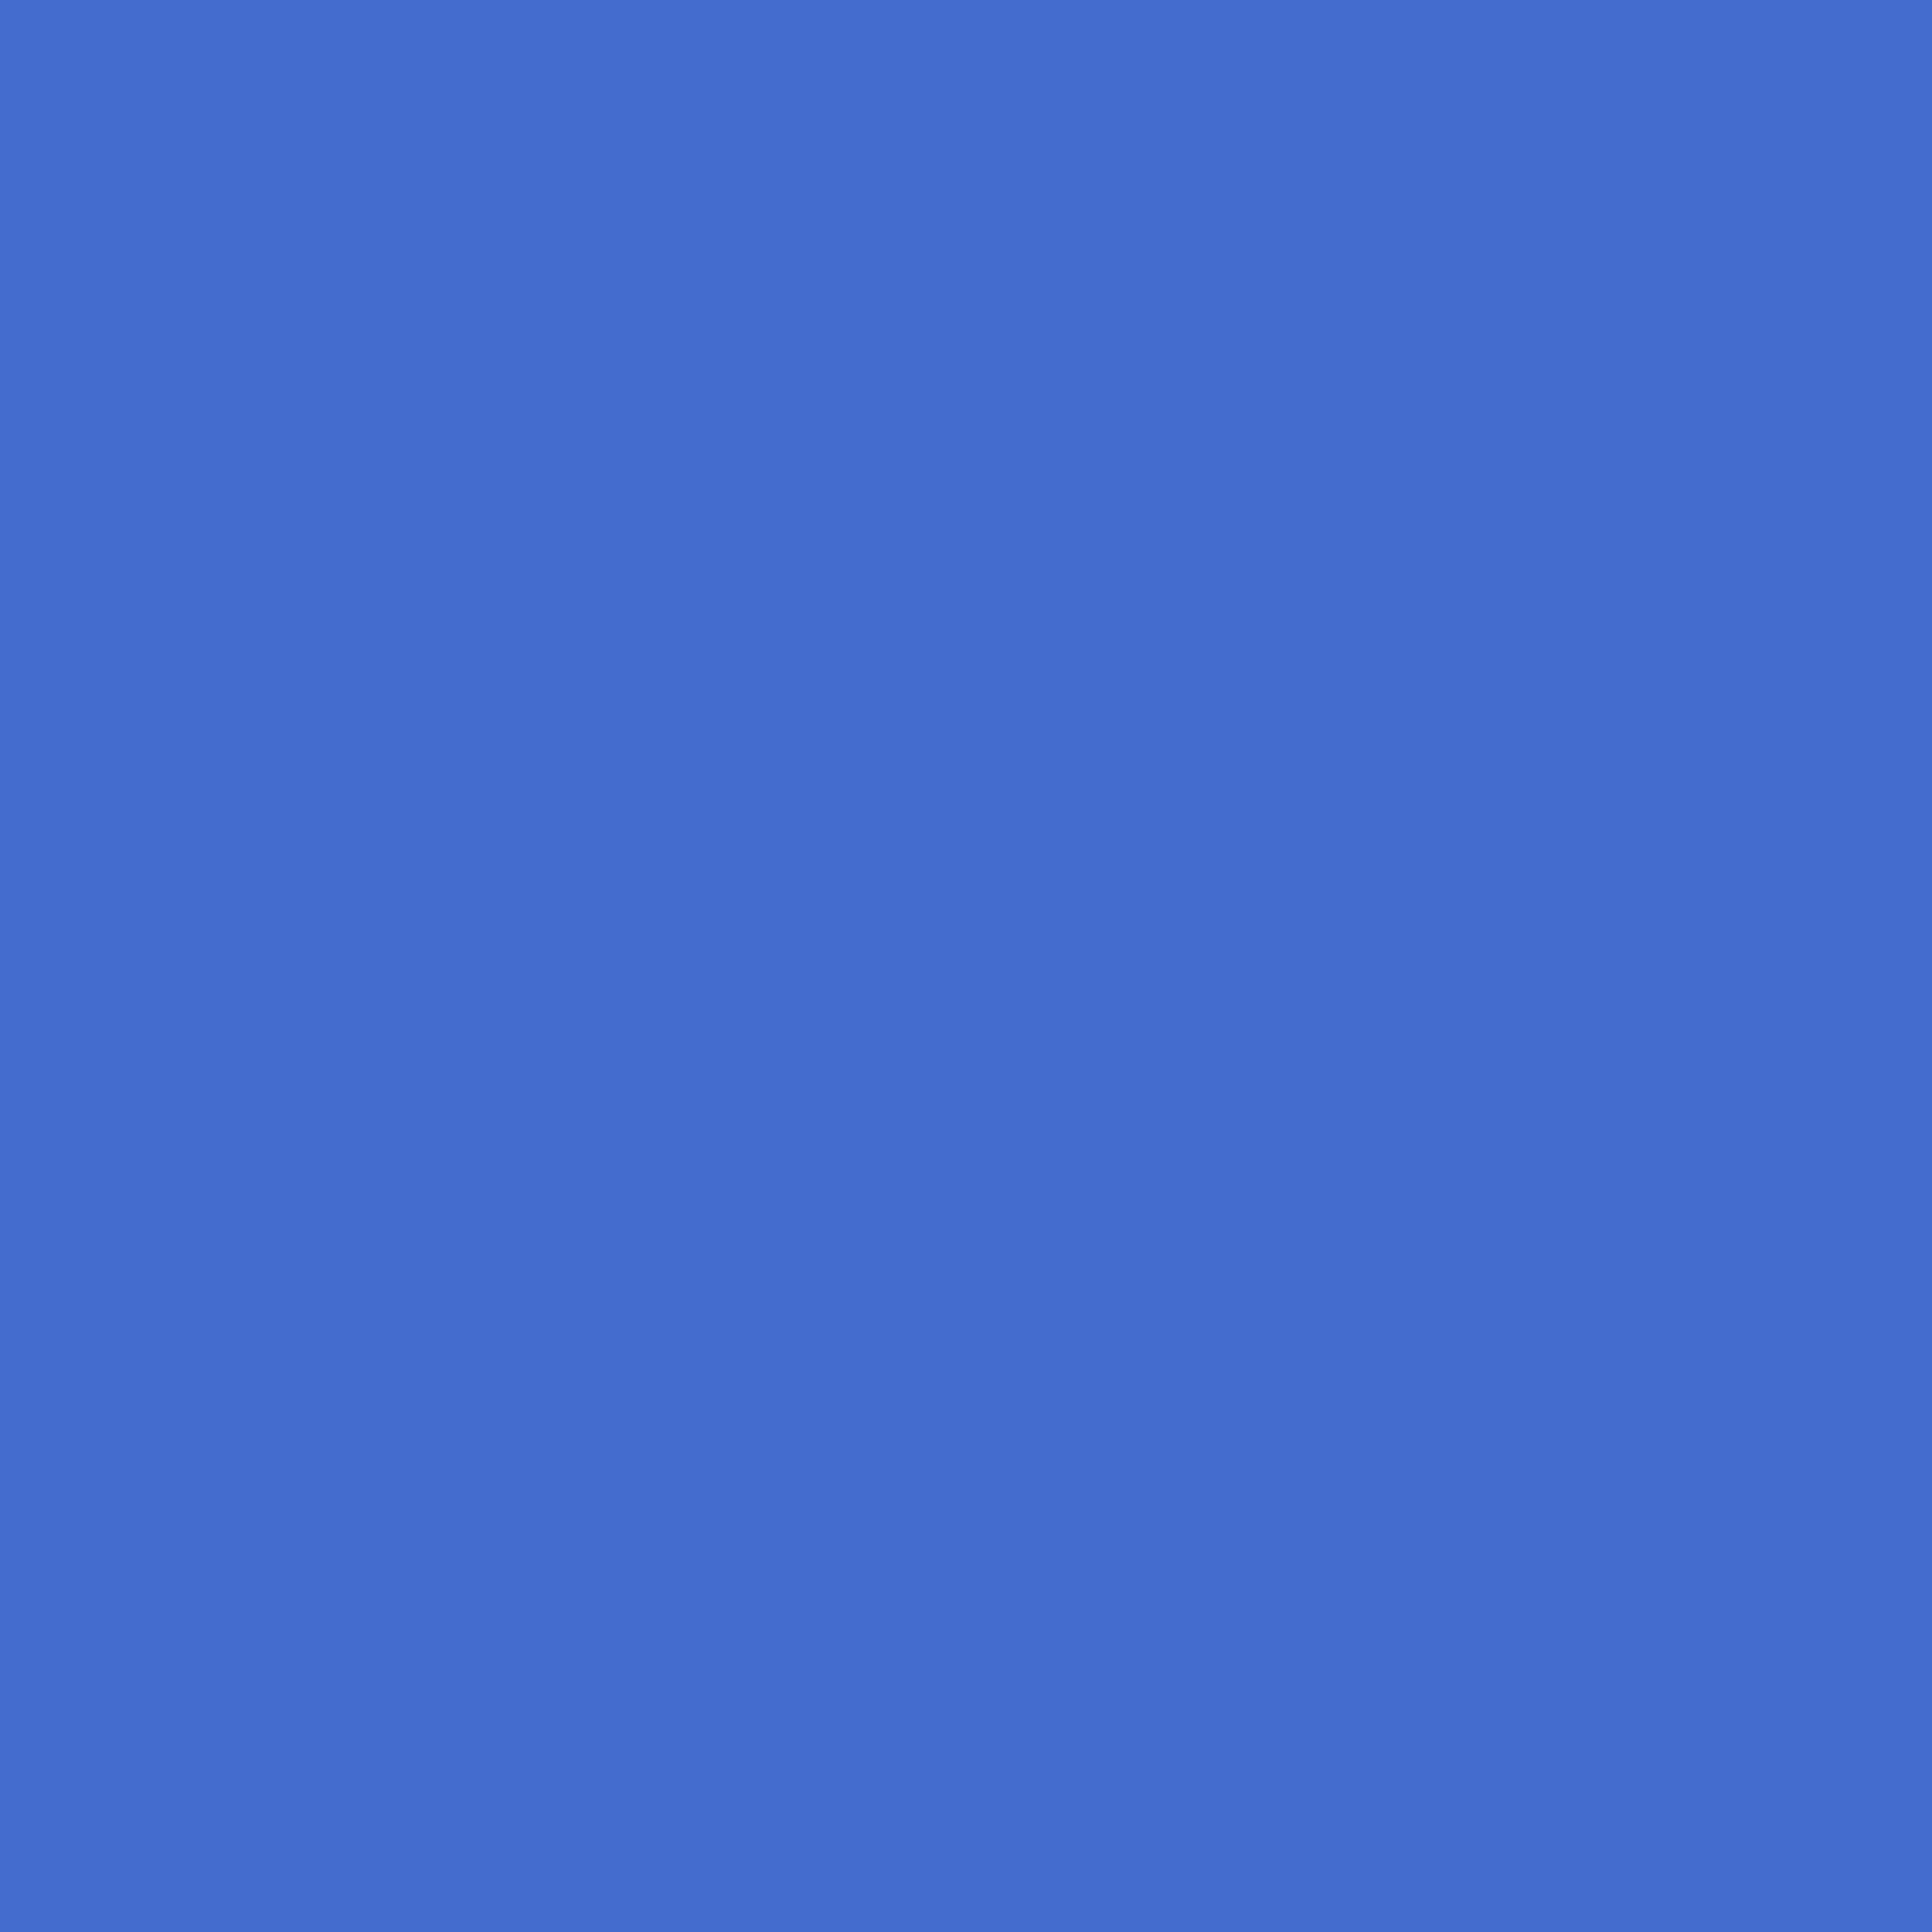 2732x2732 Han Blue Solid Color Background